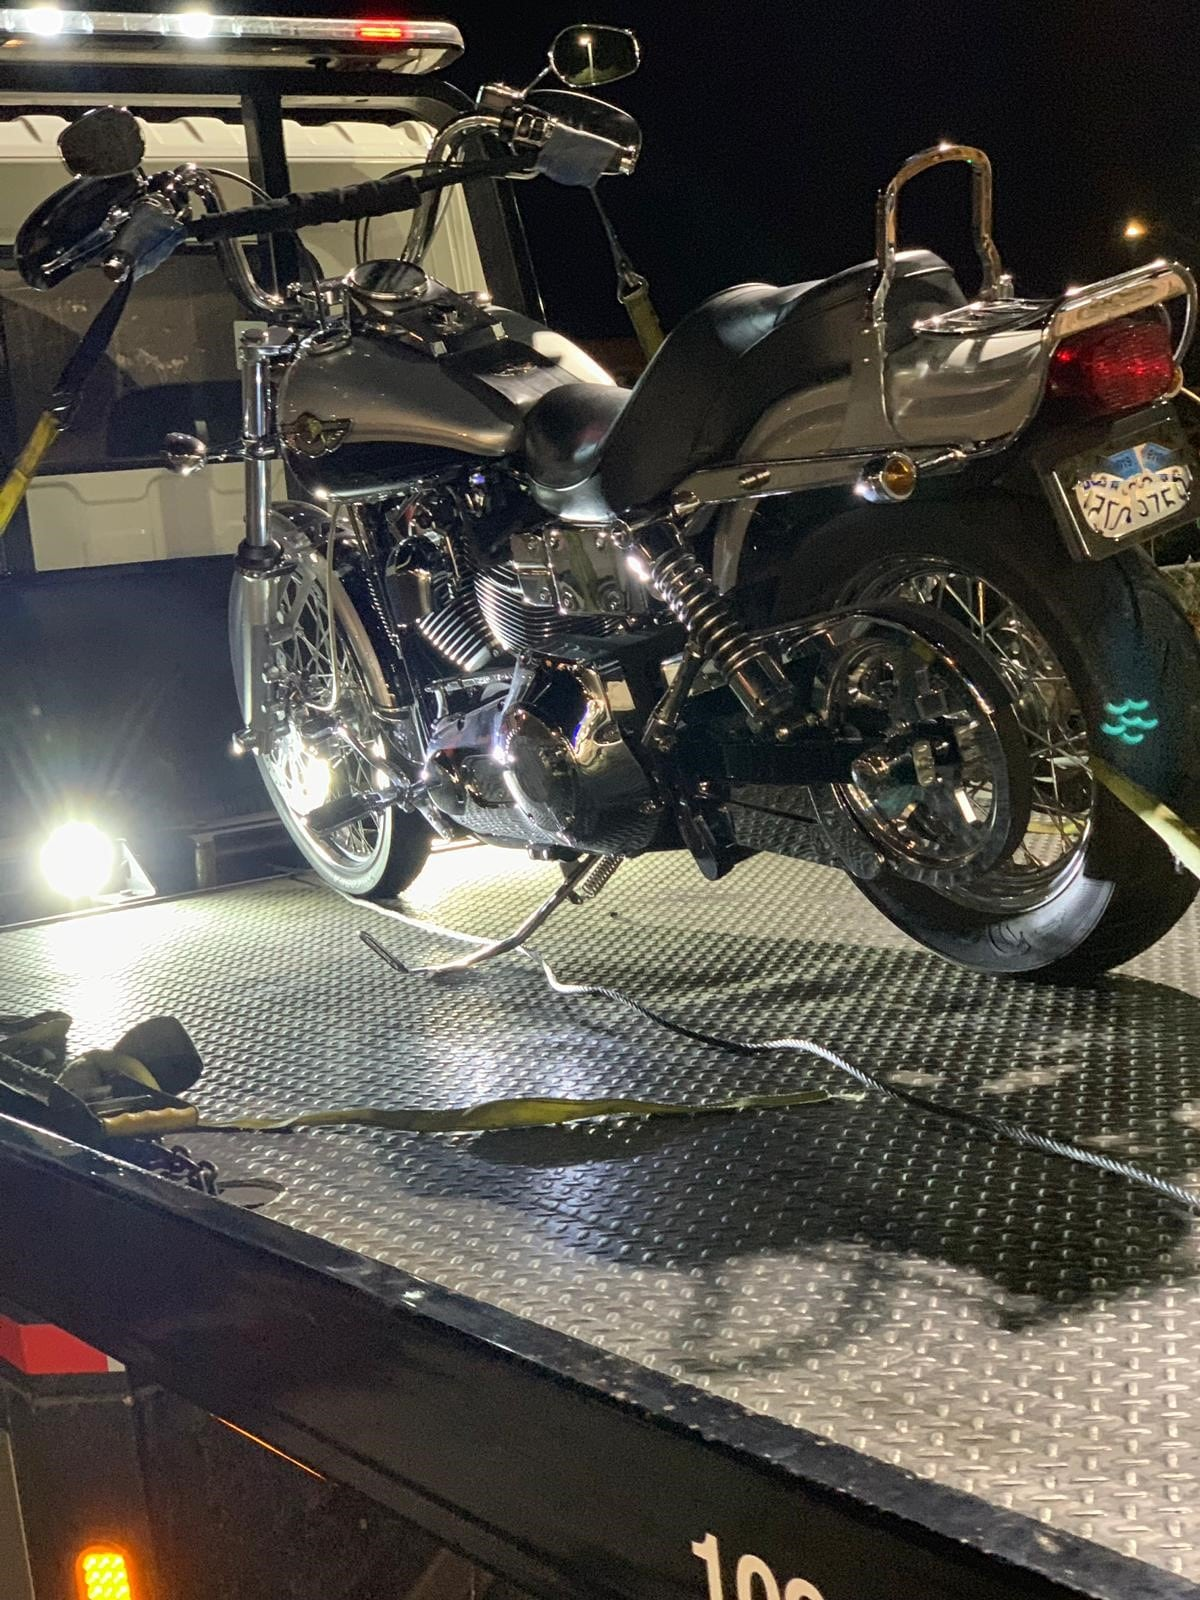 24/7 Motorcycle Towing